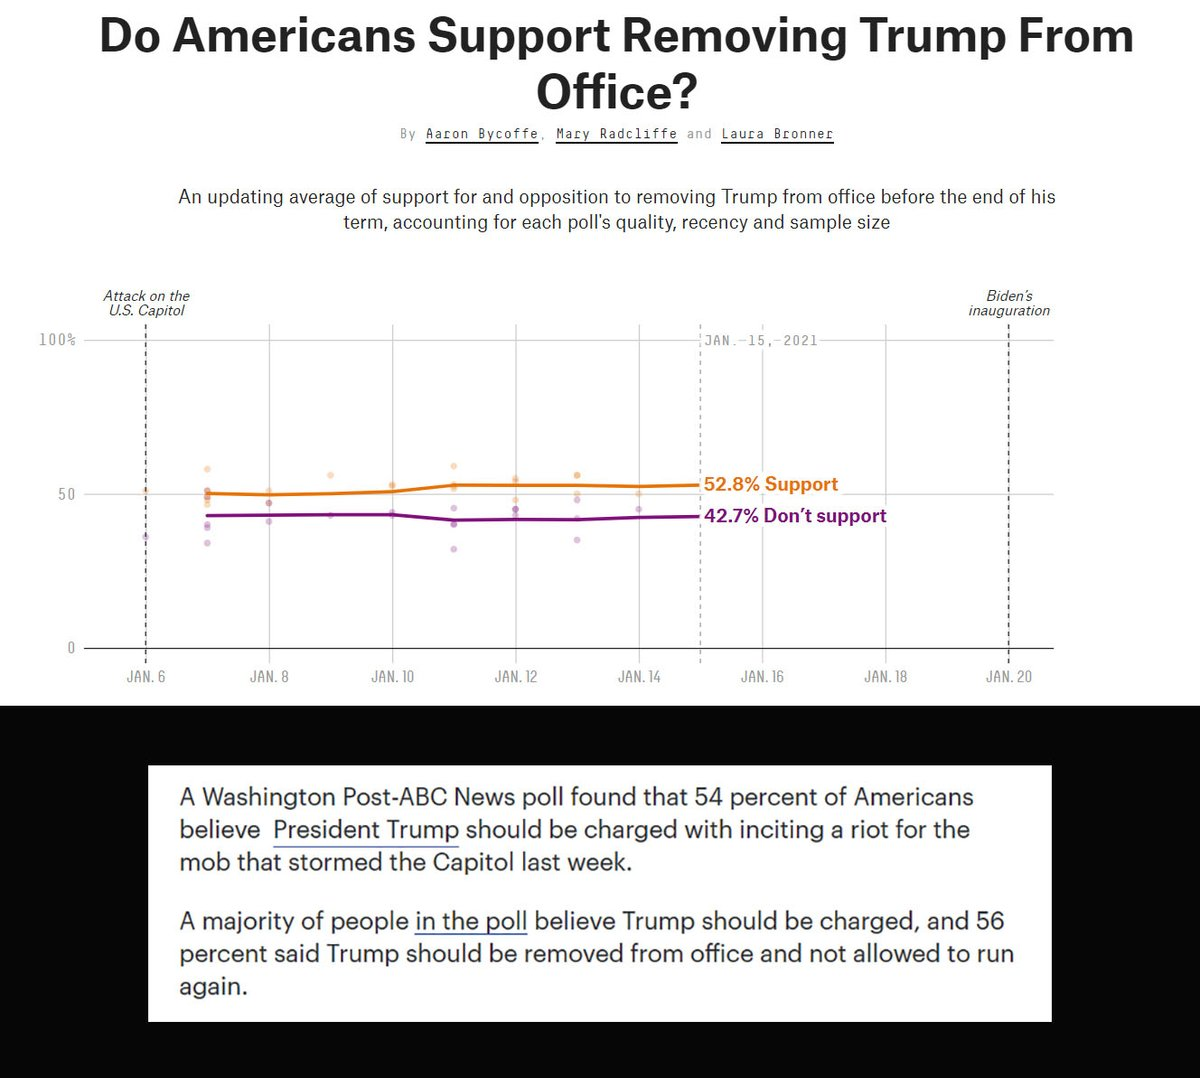 Poll after poll shows America's majority wants the Senate to charge Trump. Do it, Senators. #RemoveTrumpTODAY #RemoveTrumpNow #ImpeachTrump #Accountability #AccountabilityBeforeUnity #Congress #Senate #EnoughIsEnough #Sedition #SeditionHasConsequences #gethimout #justice #doitnow